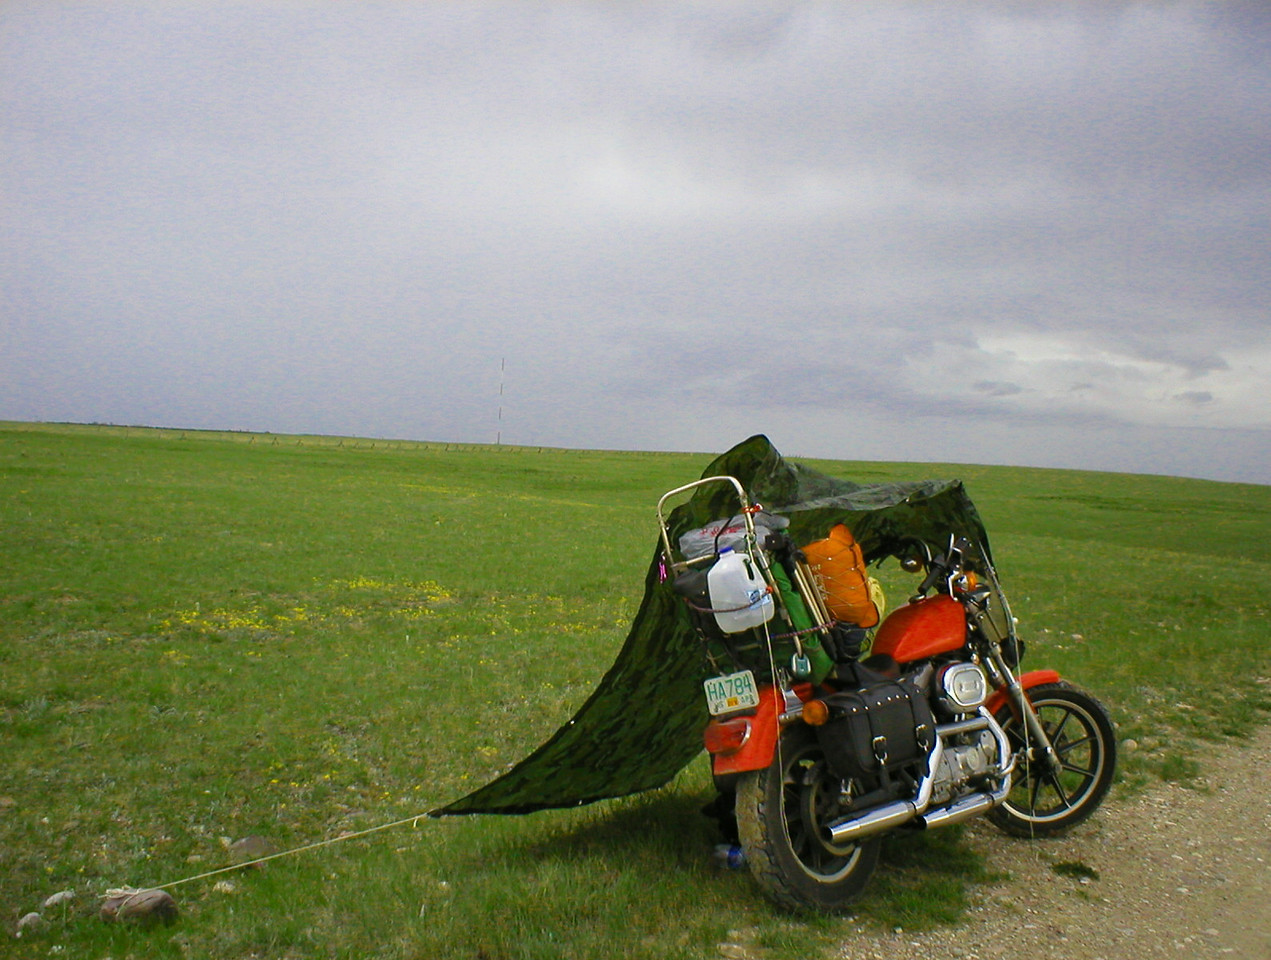 """I remember using this same technique when I was 16 while cruising solo to Yellowstone. After recently rereading """"Zen and the art of motorcycle maintenance"""" I realize where I learned the technique from."""